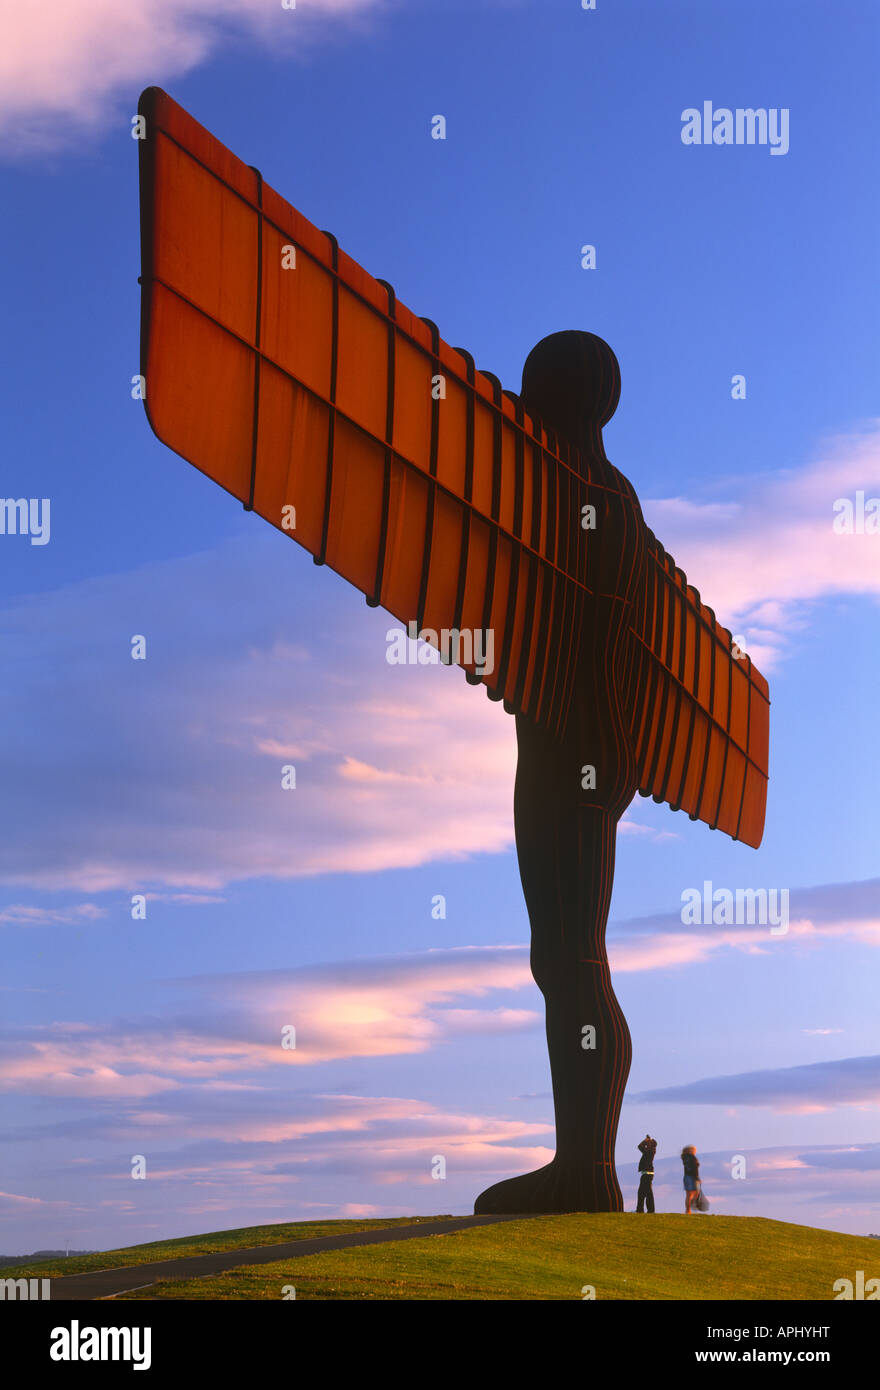 Evening view of the Gateshead Angel of the North, Gateshead, Tyne and Wear - Stock Image